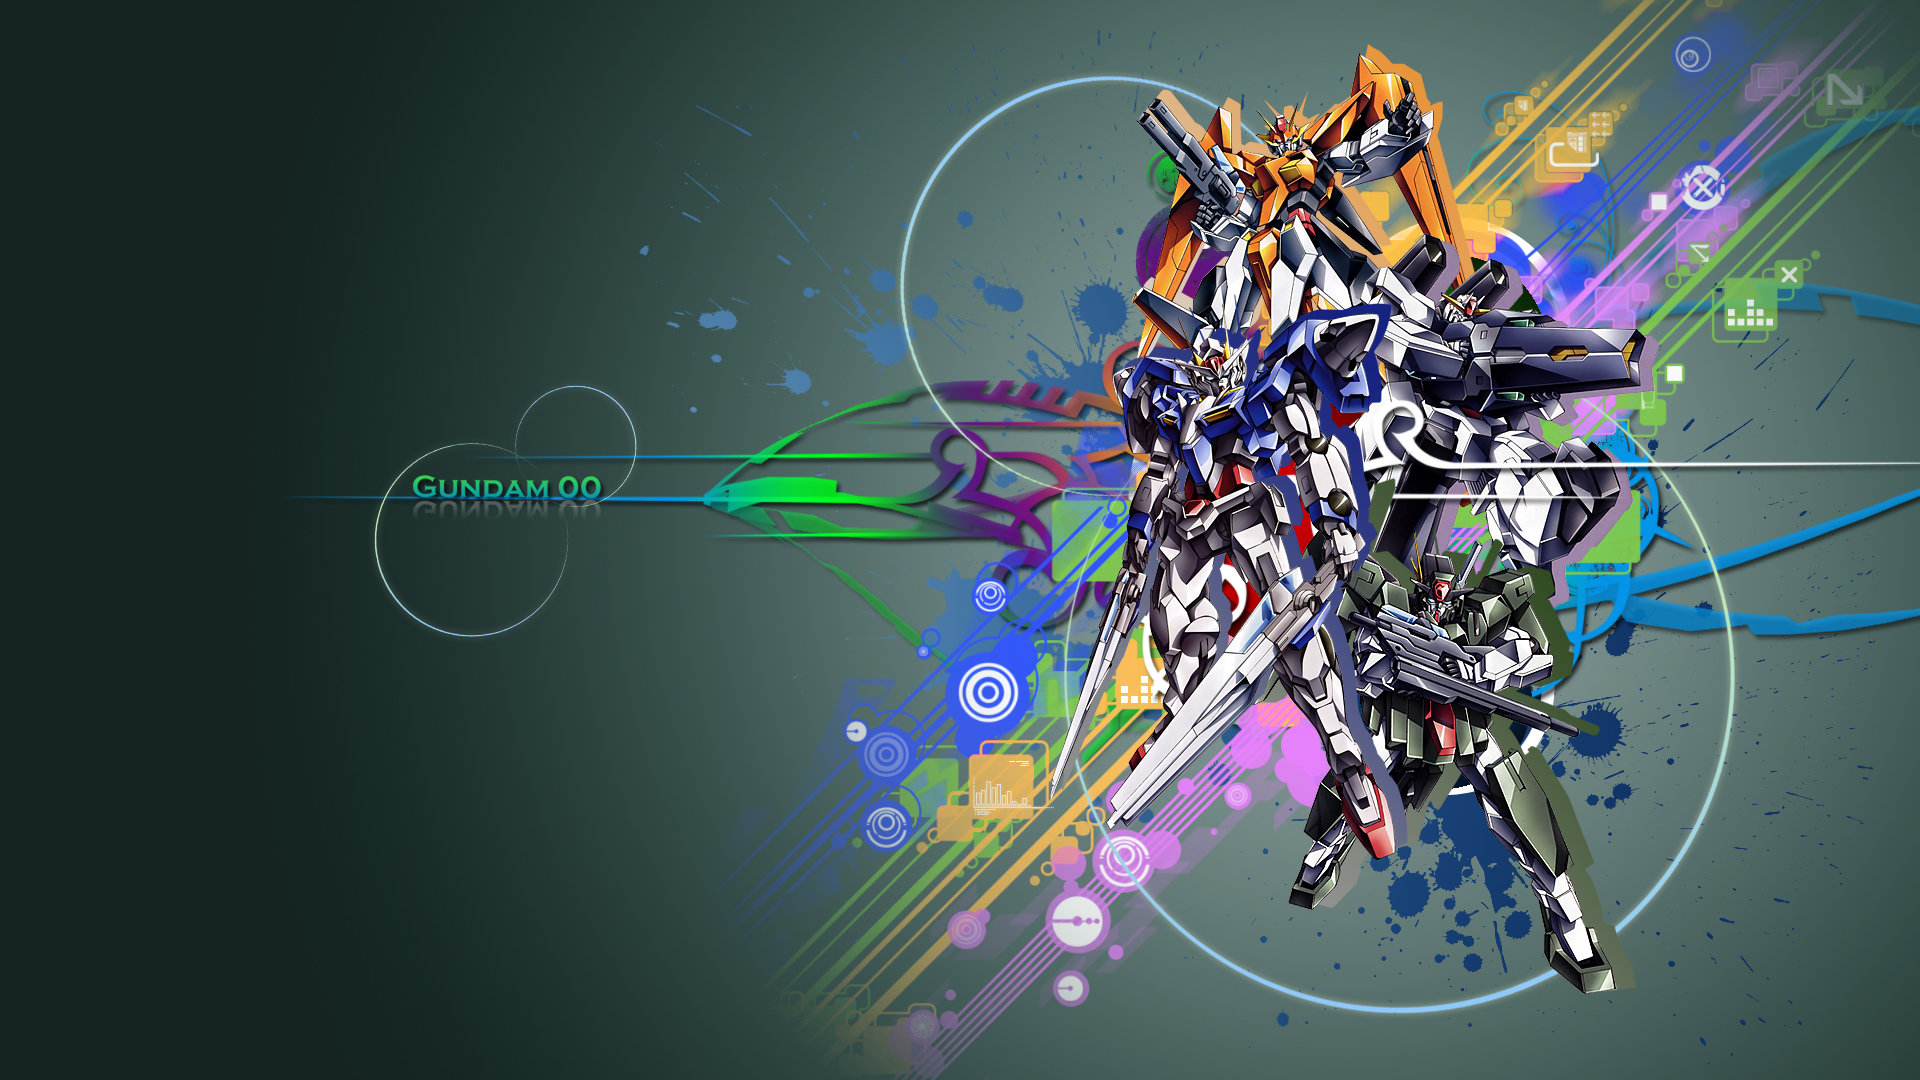 Gundam Wallpapers 1920x1080 Full Hd 1080p Desktop Backgrounds